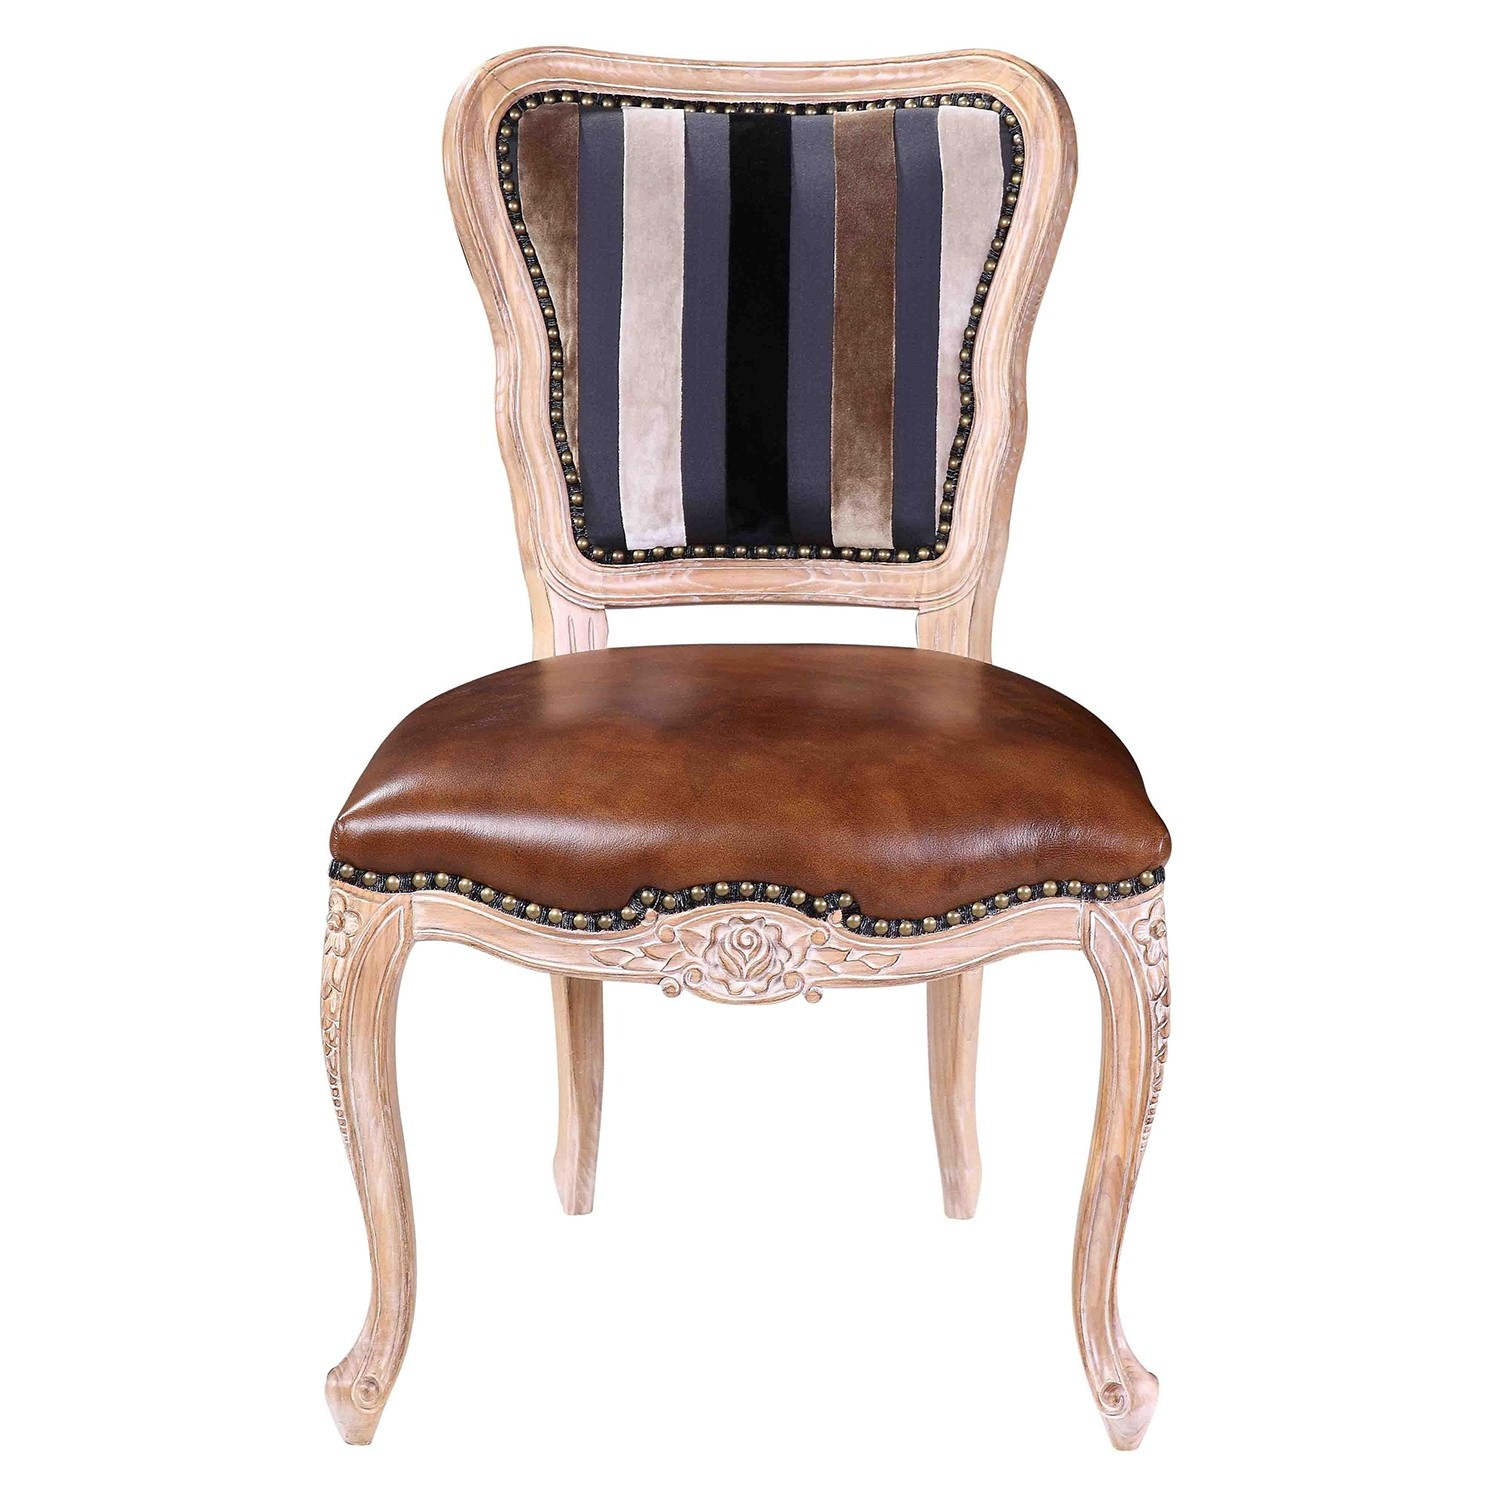 Dining chair|Dining set|Dining room furniture